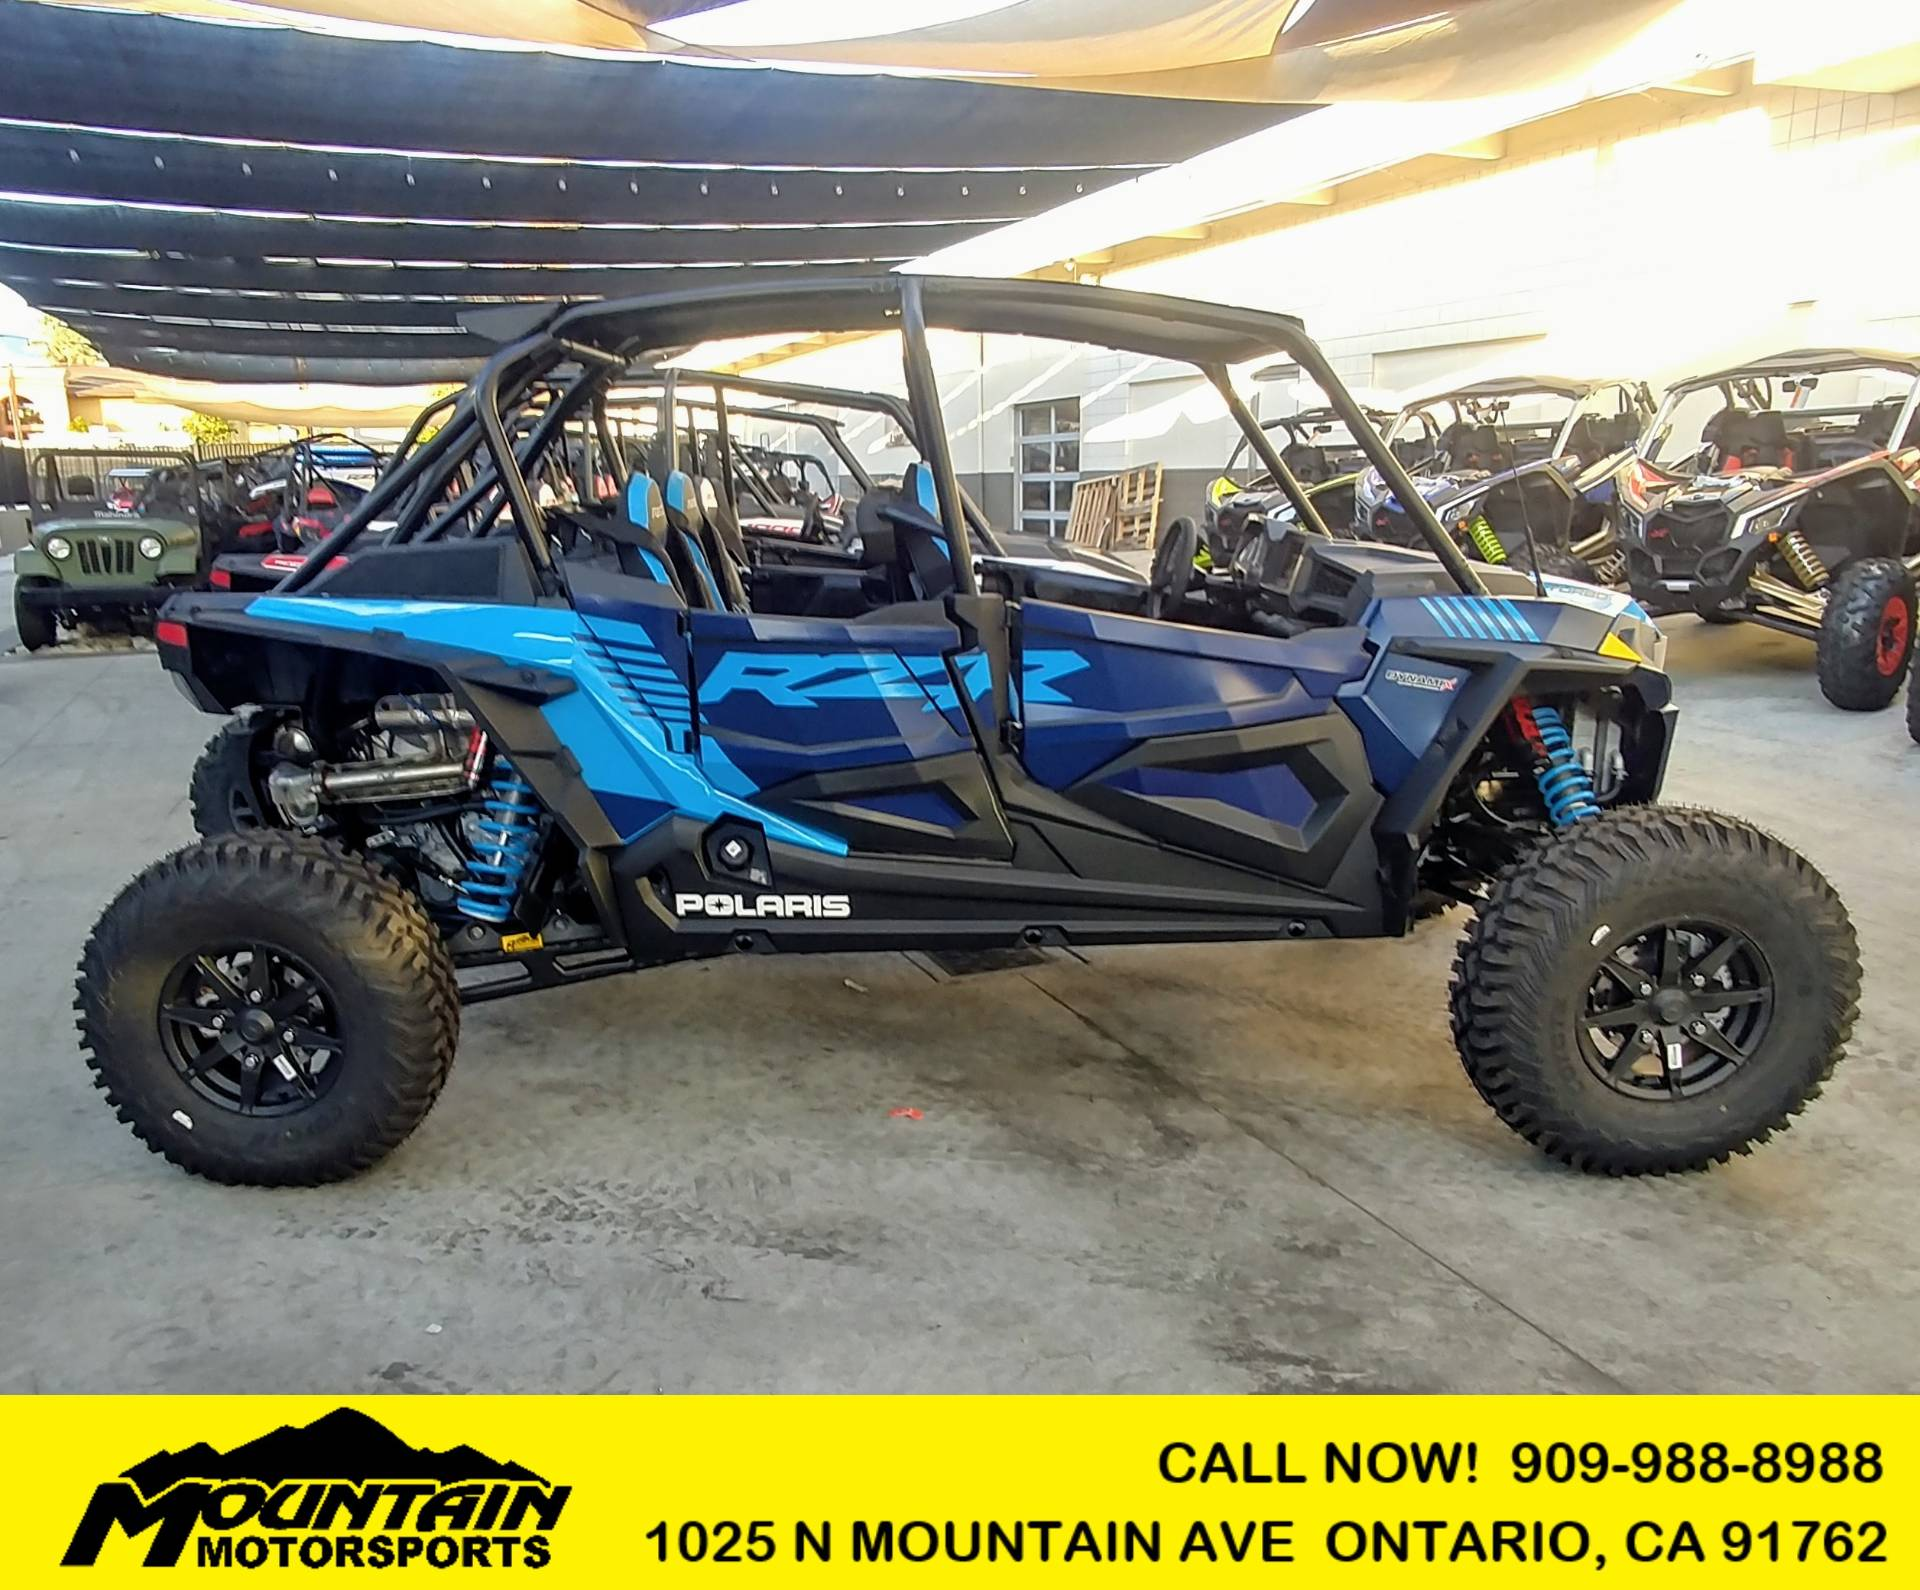 2020 Polaris RZR XP 4 Turbo S in Ontario, California - Photo 1